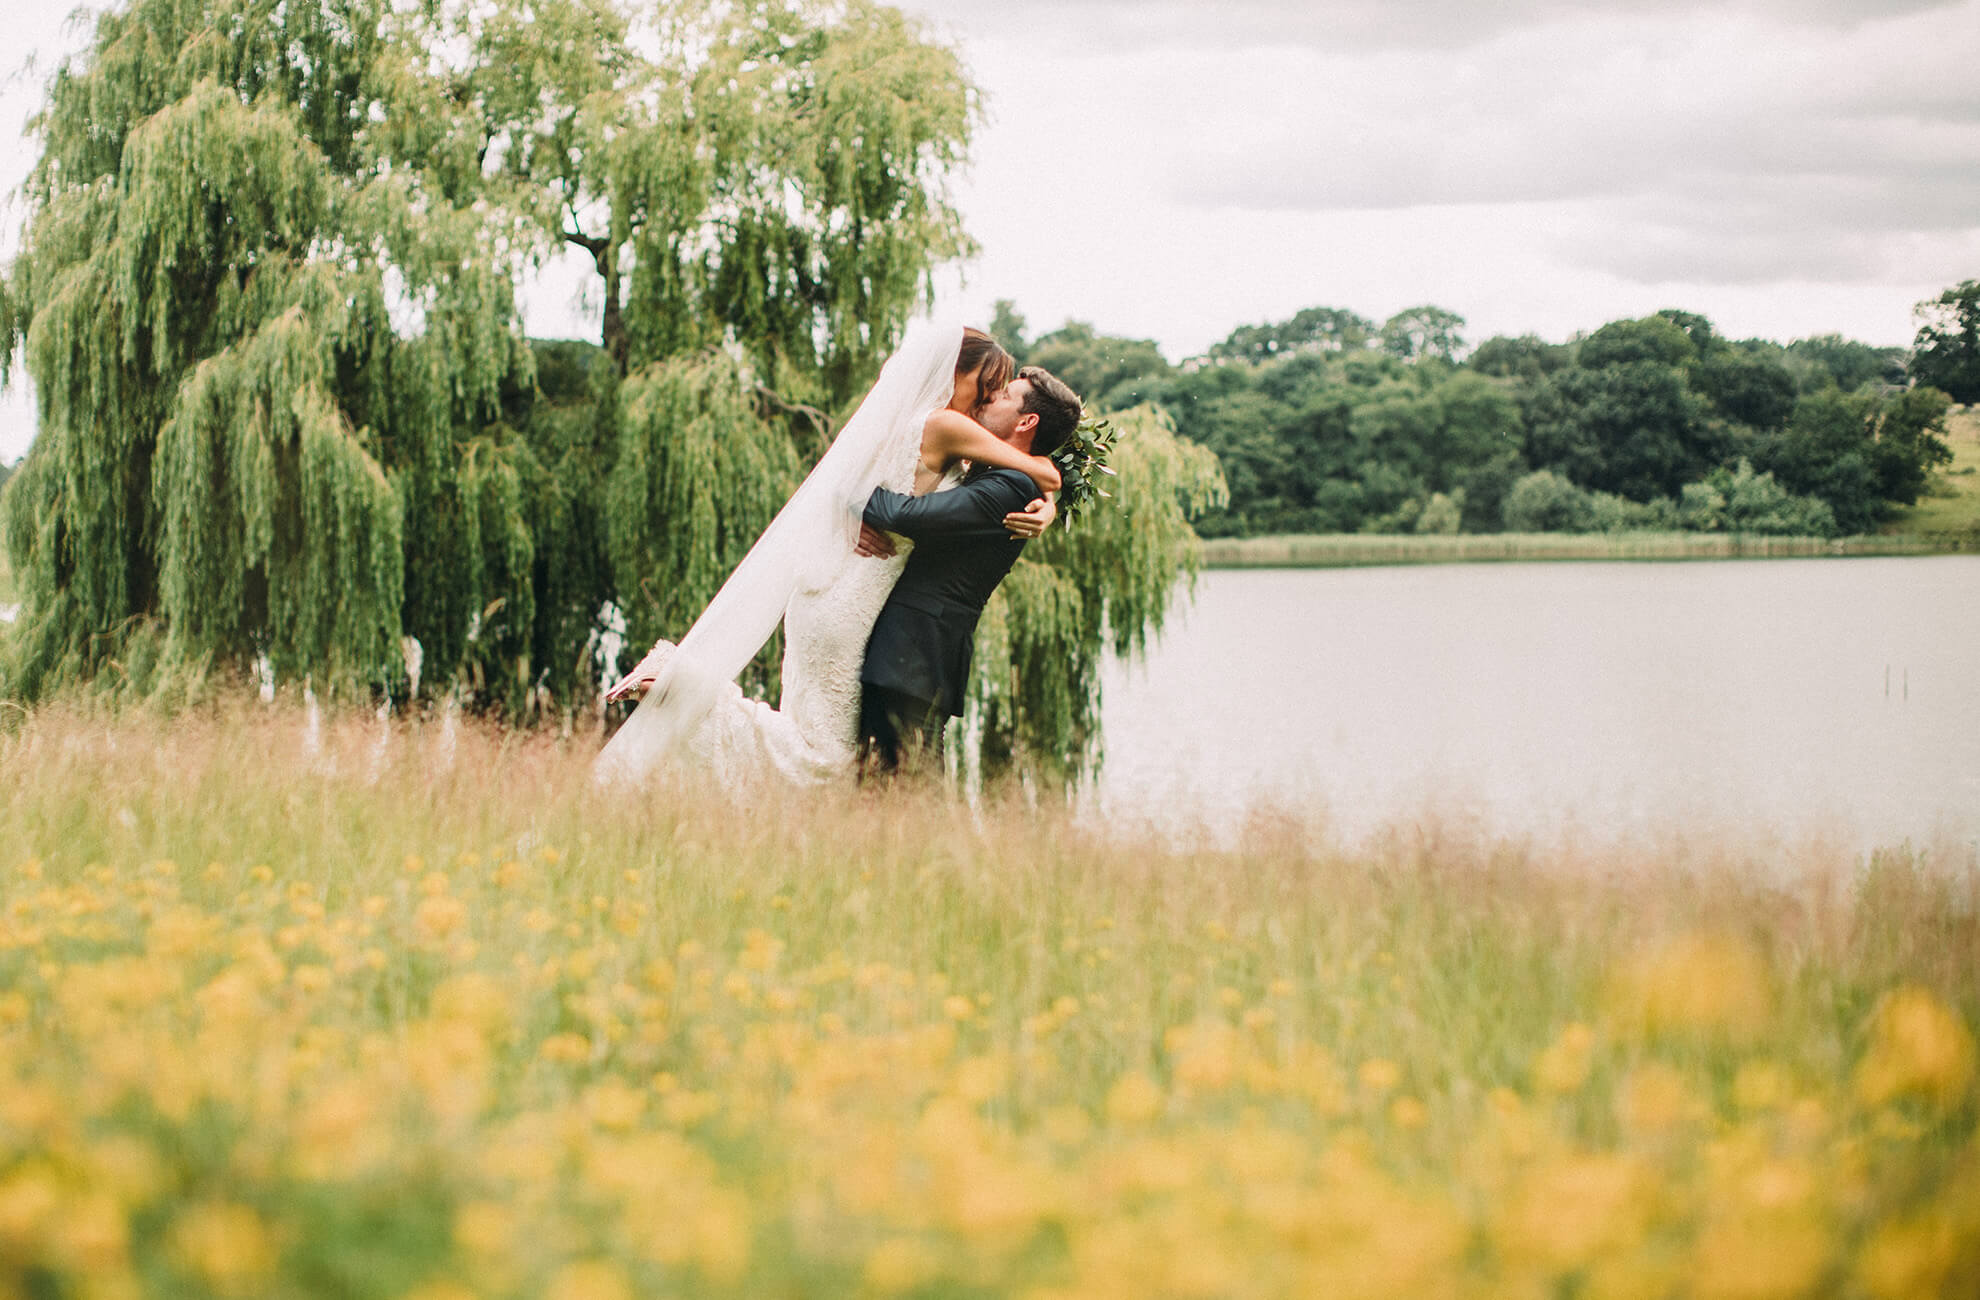 The newlyweds share a kiss by the lake at Combermere Abbey wedding venue in Cheshire